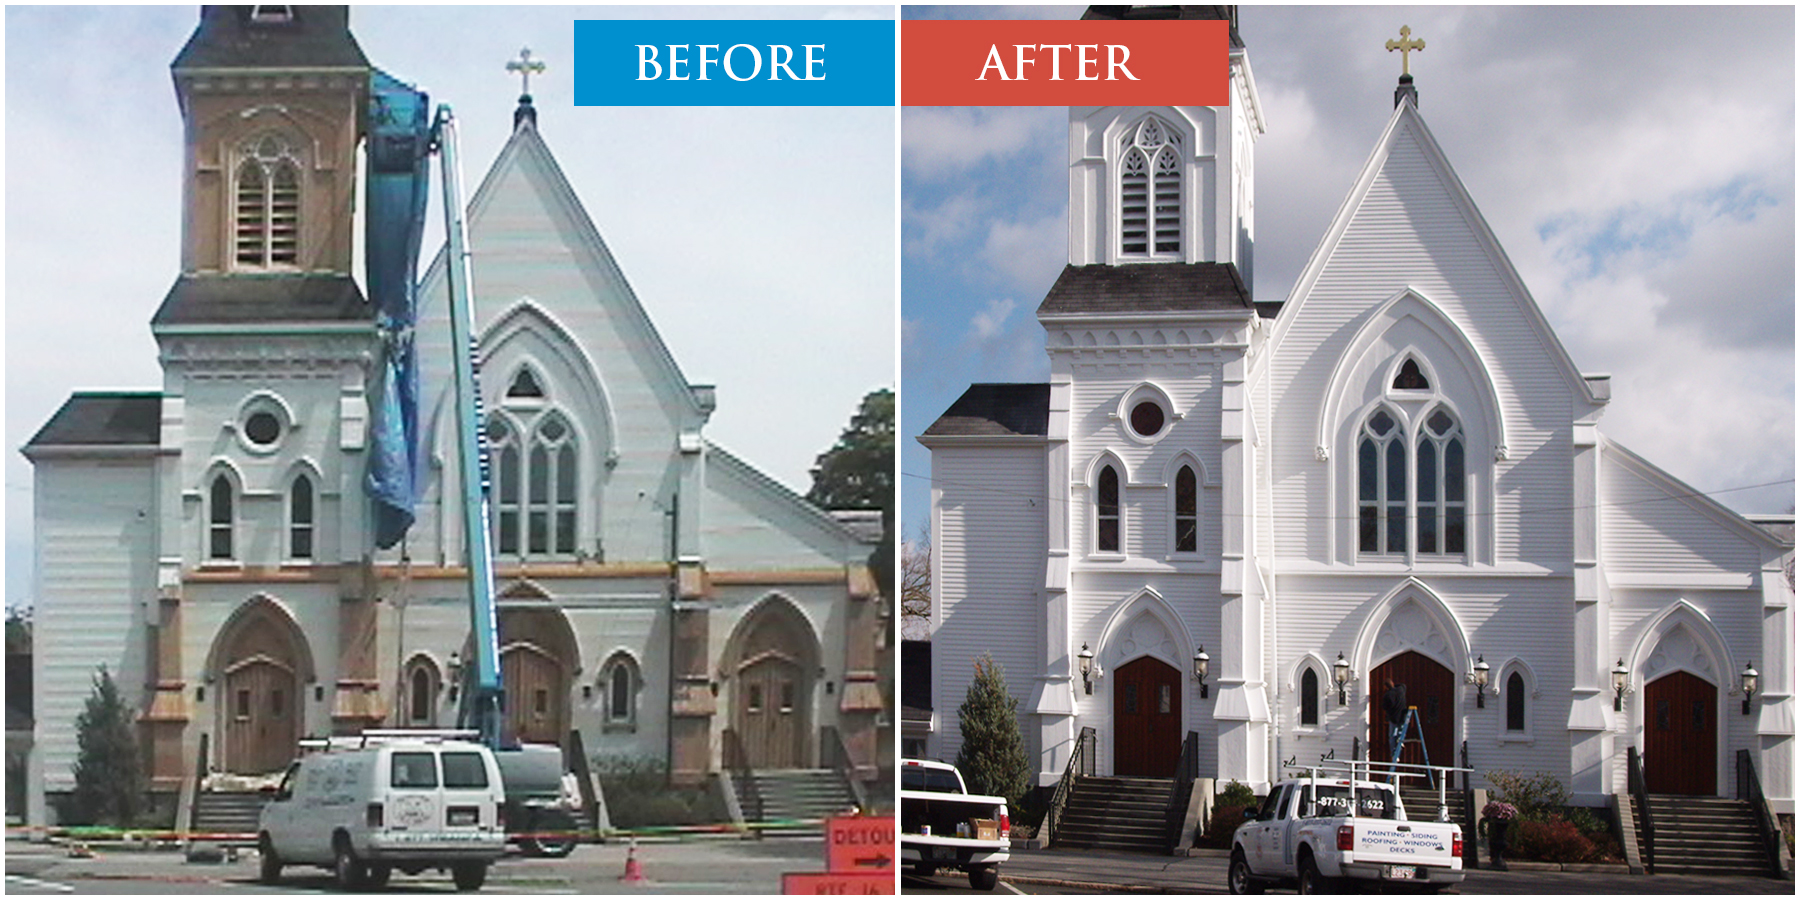 Cmmercial Painting Services. Church Painters.